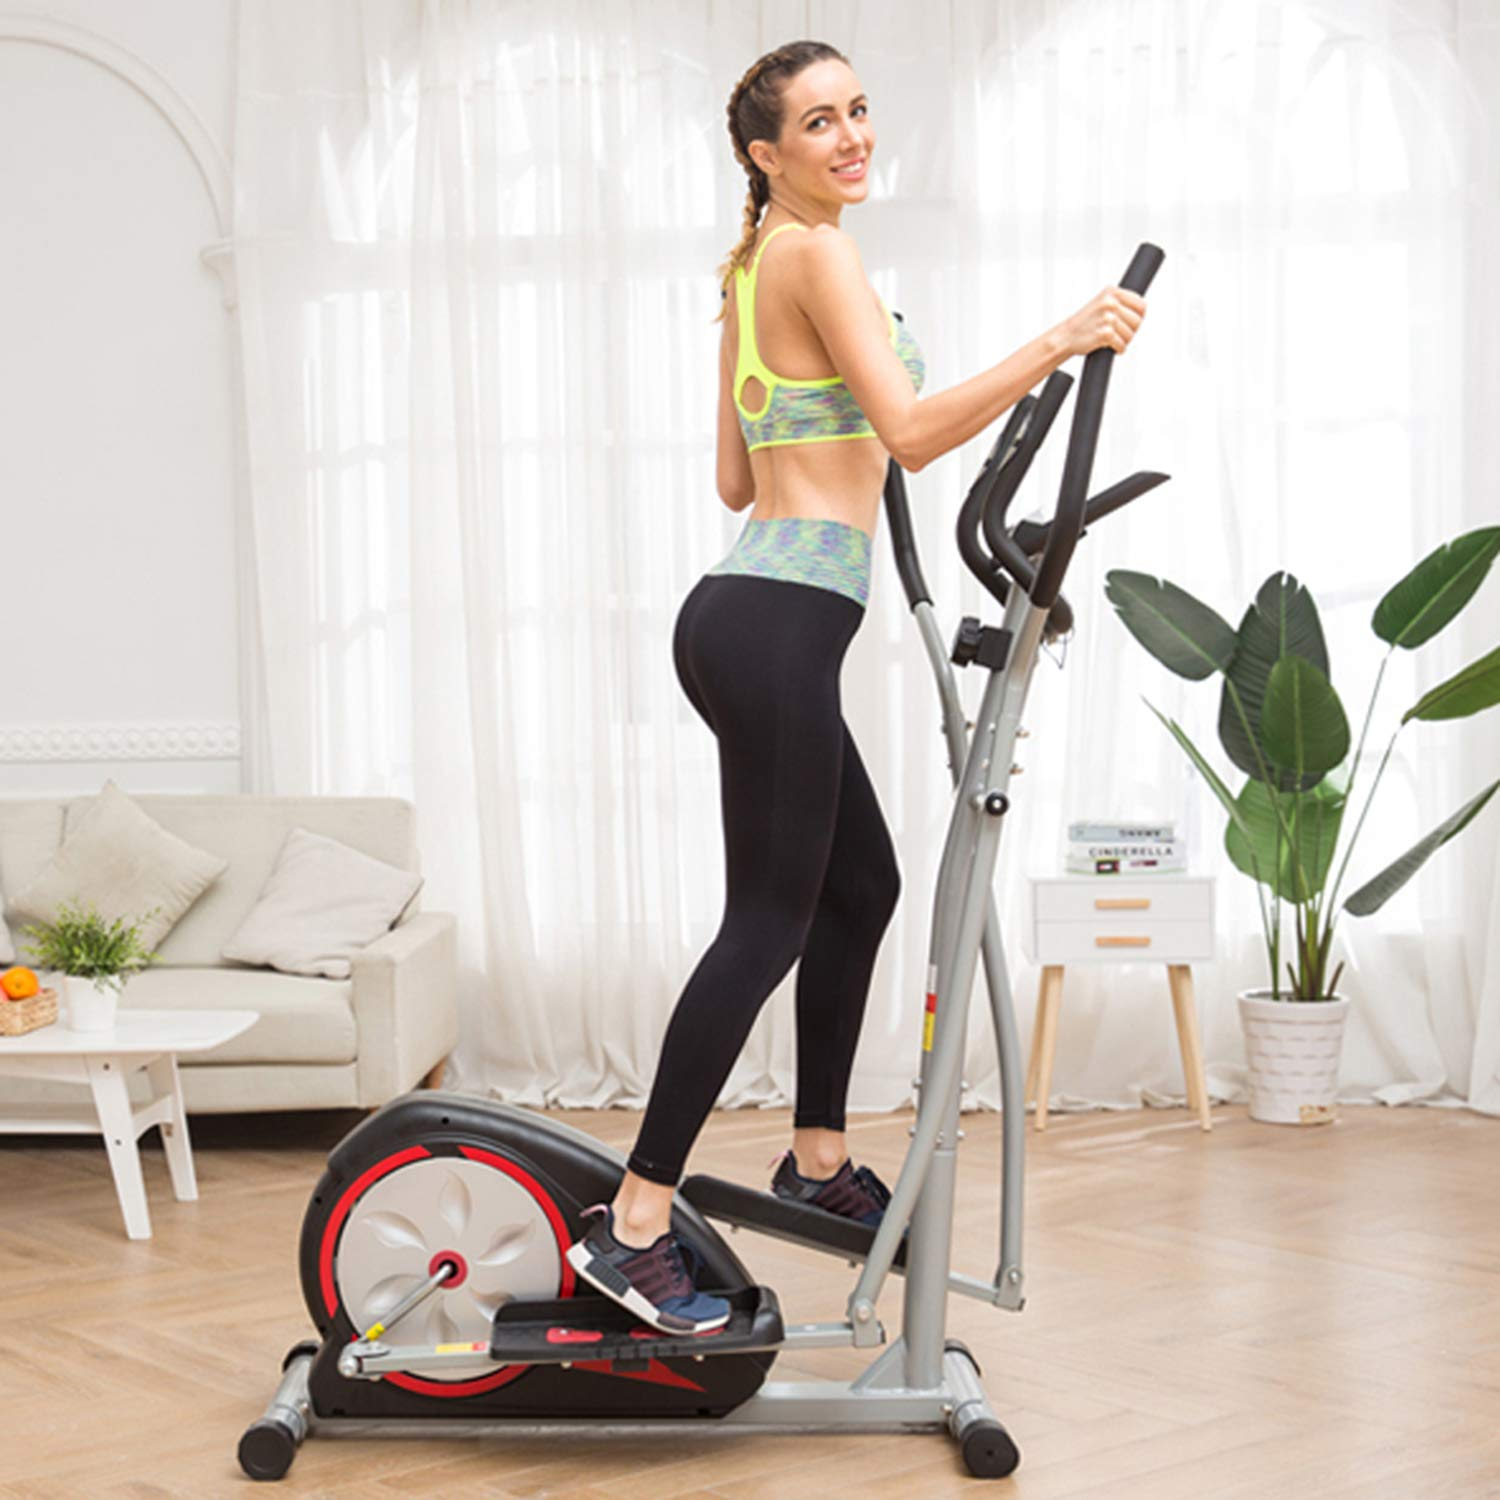 Home Elliptical Machine Exercise with LCD Monitor, Magnetic Smooth Quiet Health Fitness Workout Machines (Black) by Hurbo